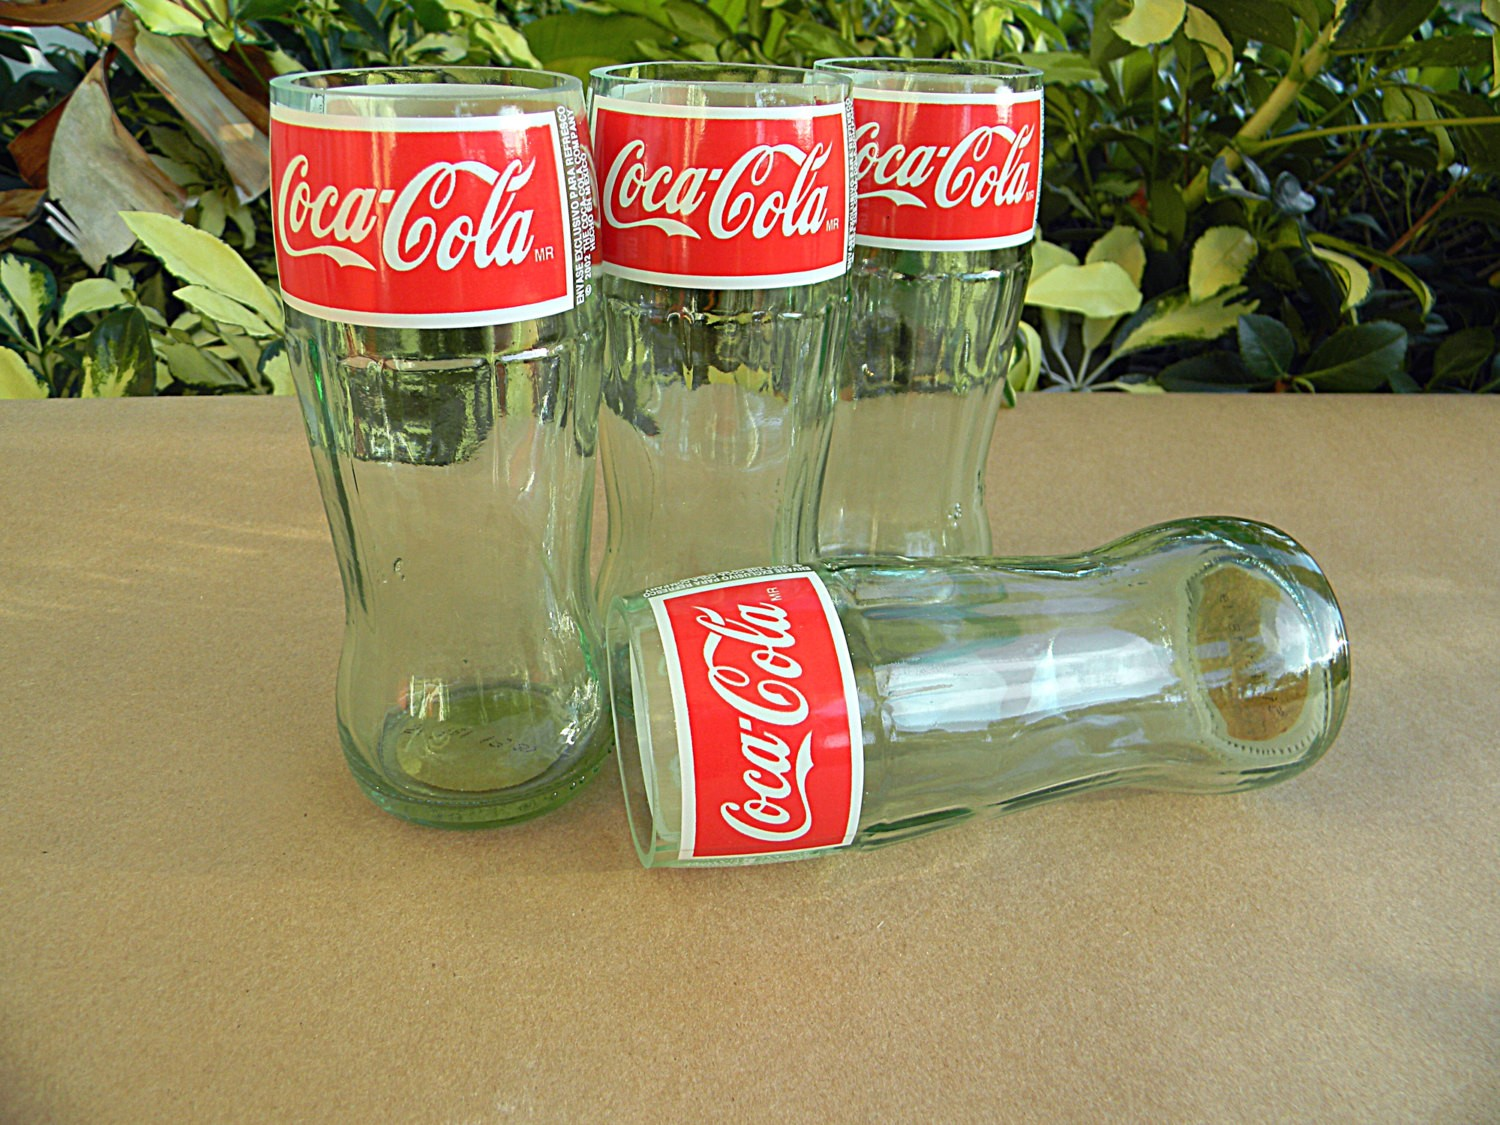 des verres coca cola r alis s partir de bouteilles recycl es. Black Bedroom Furniture Sets. Home Design Ideas